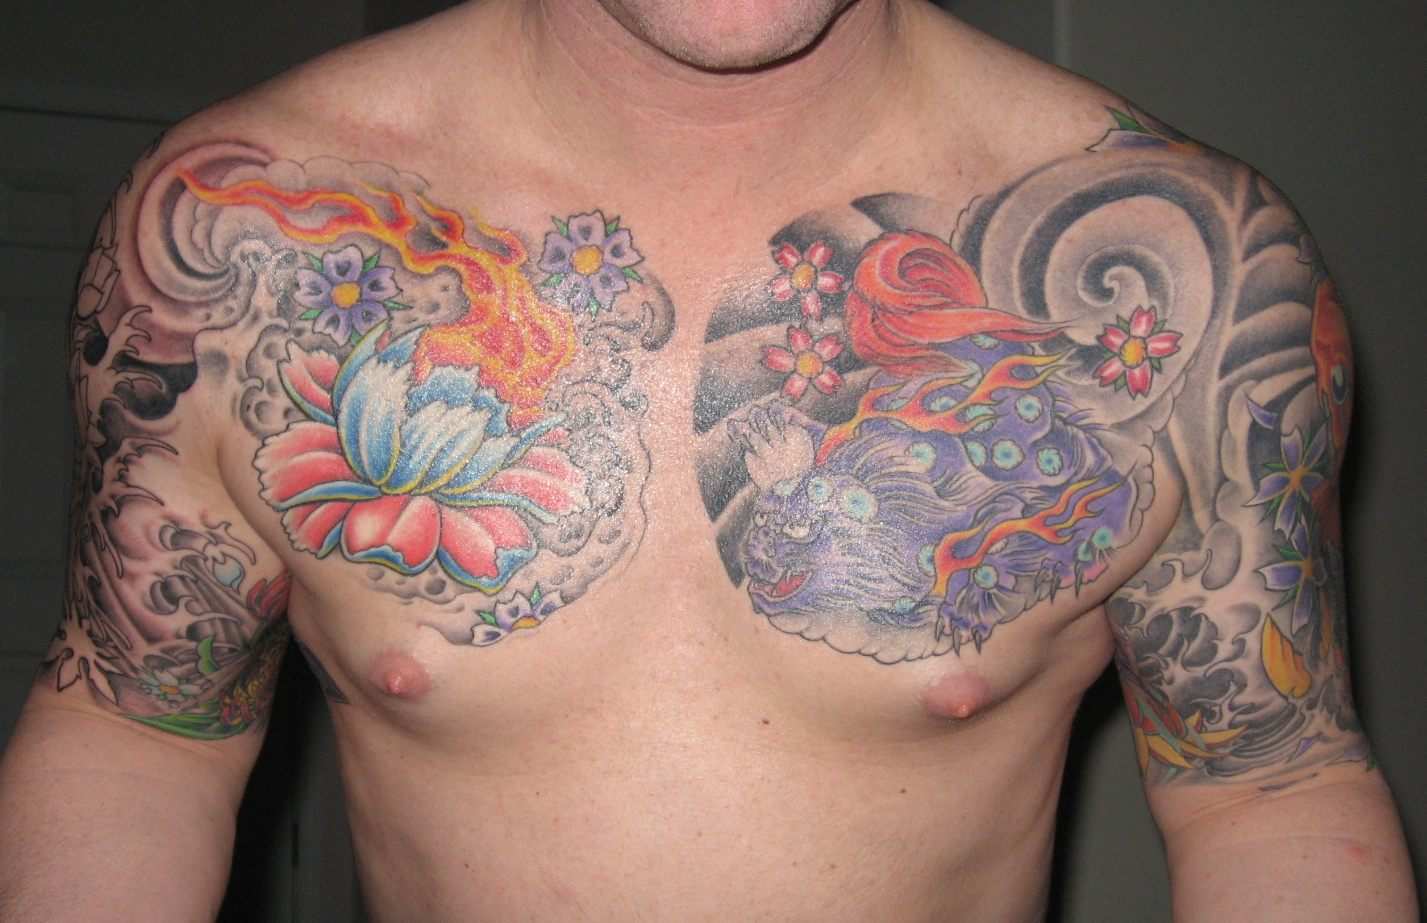 Tattoo Ideas Chest: Information & Technology: Chest Tattoos